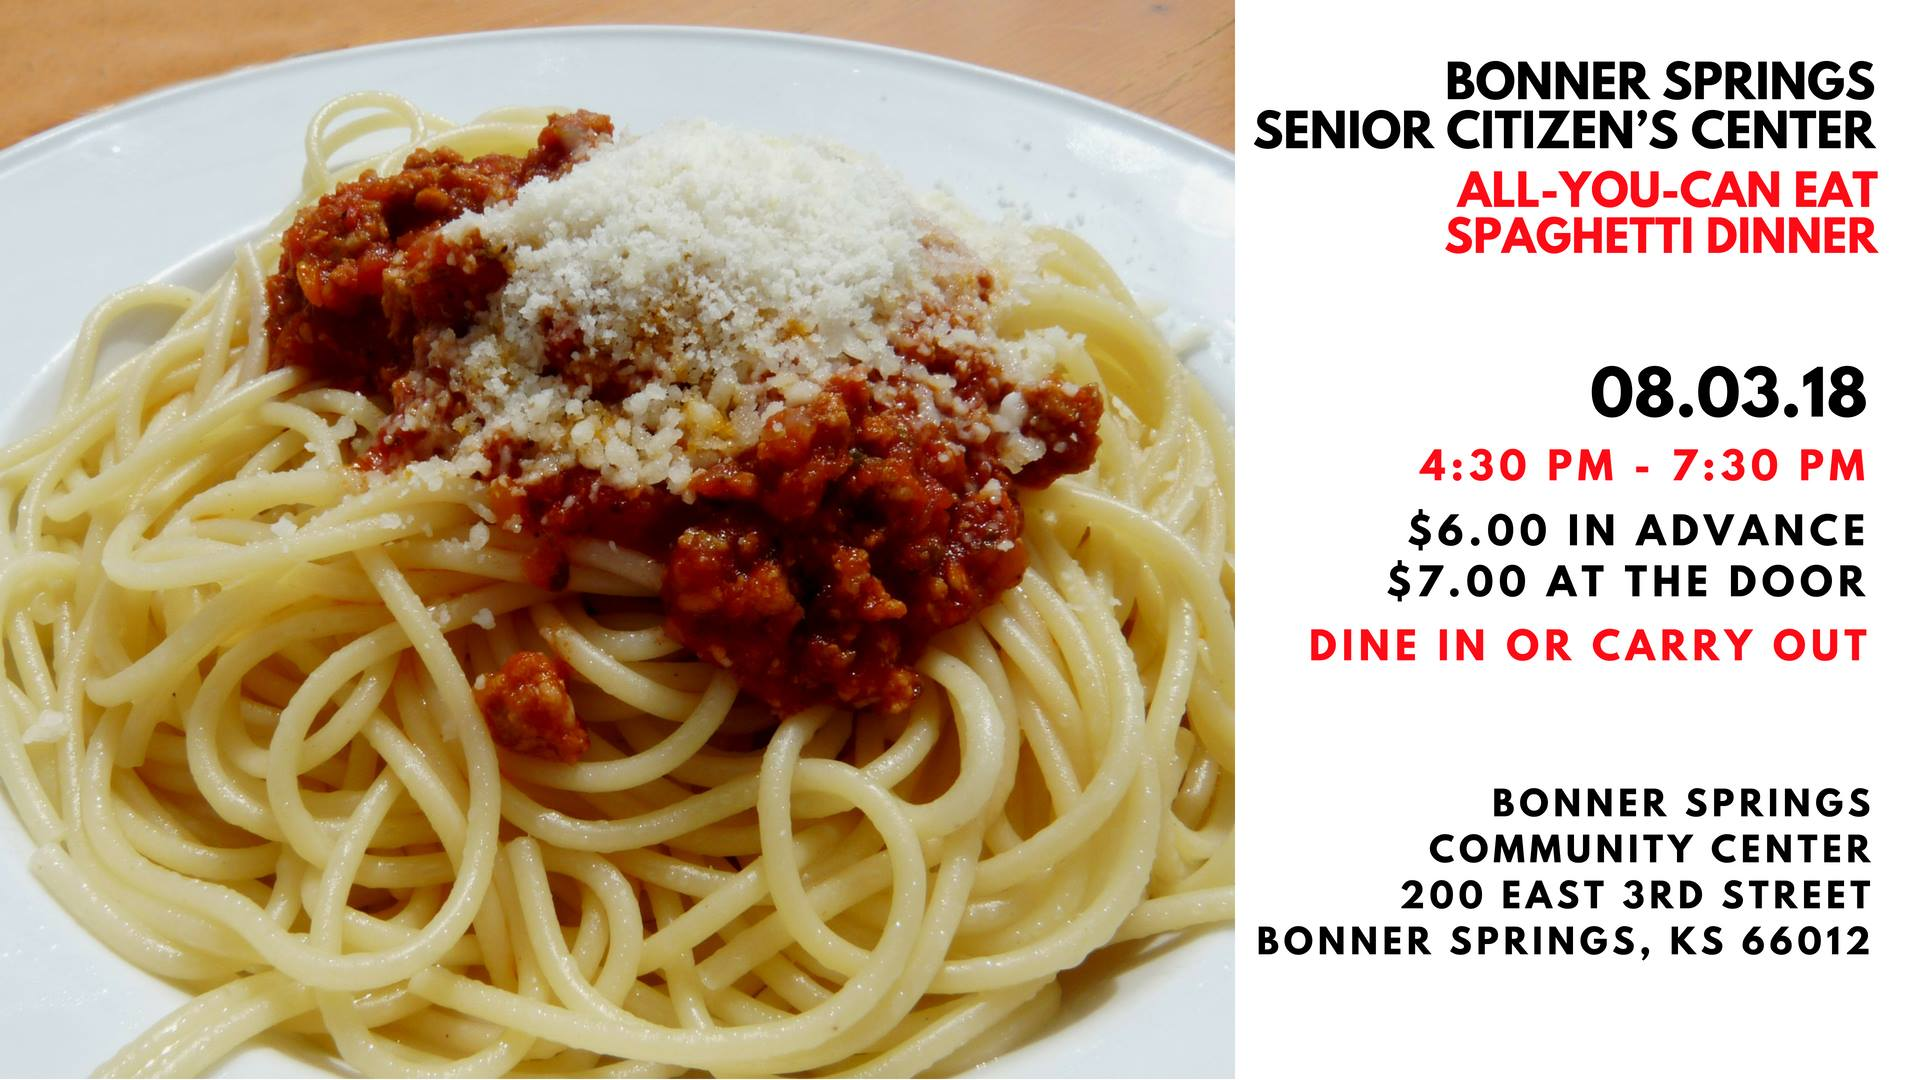 Senior Center Spaghetti Dinner